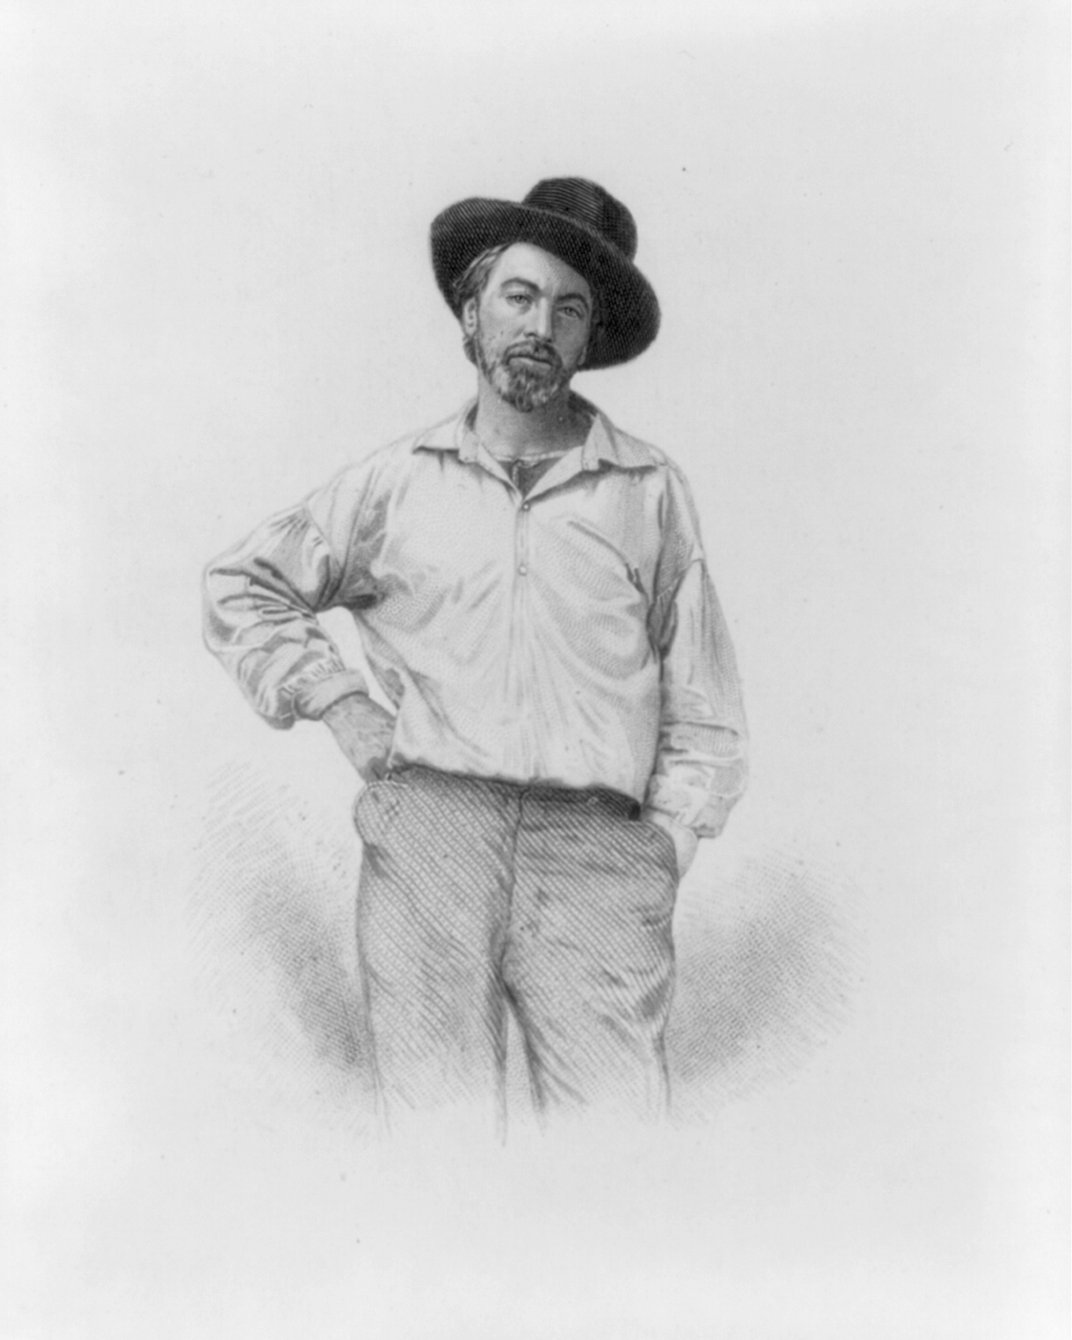 Rare Walt Whitman Artifacts Go on View at Library of Congress for Poet's 200th Birthday